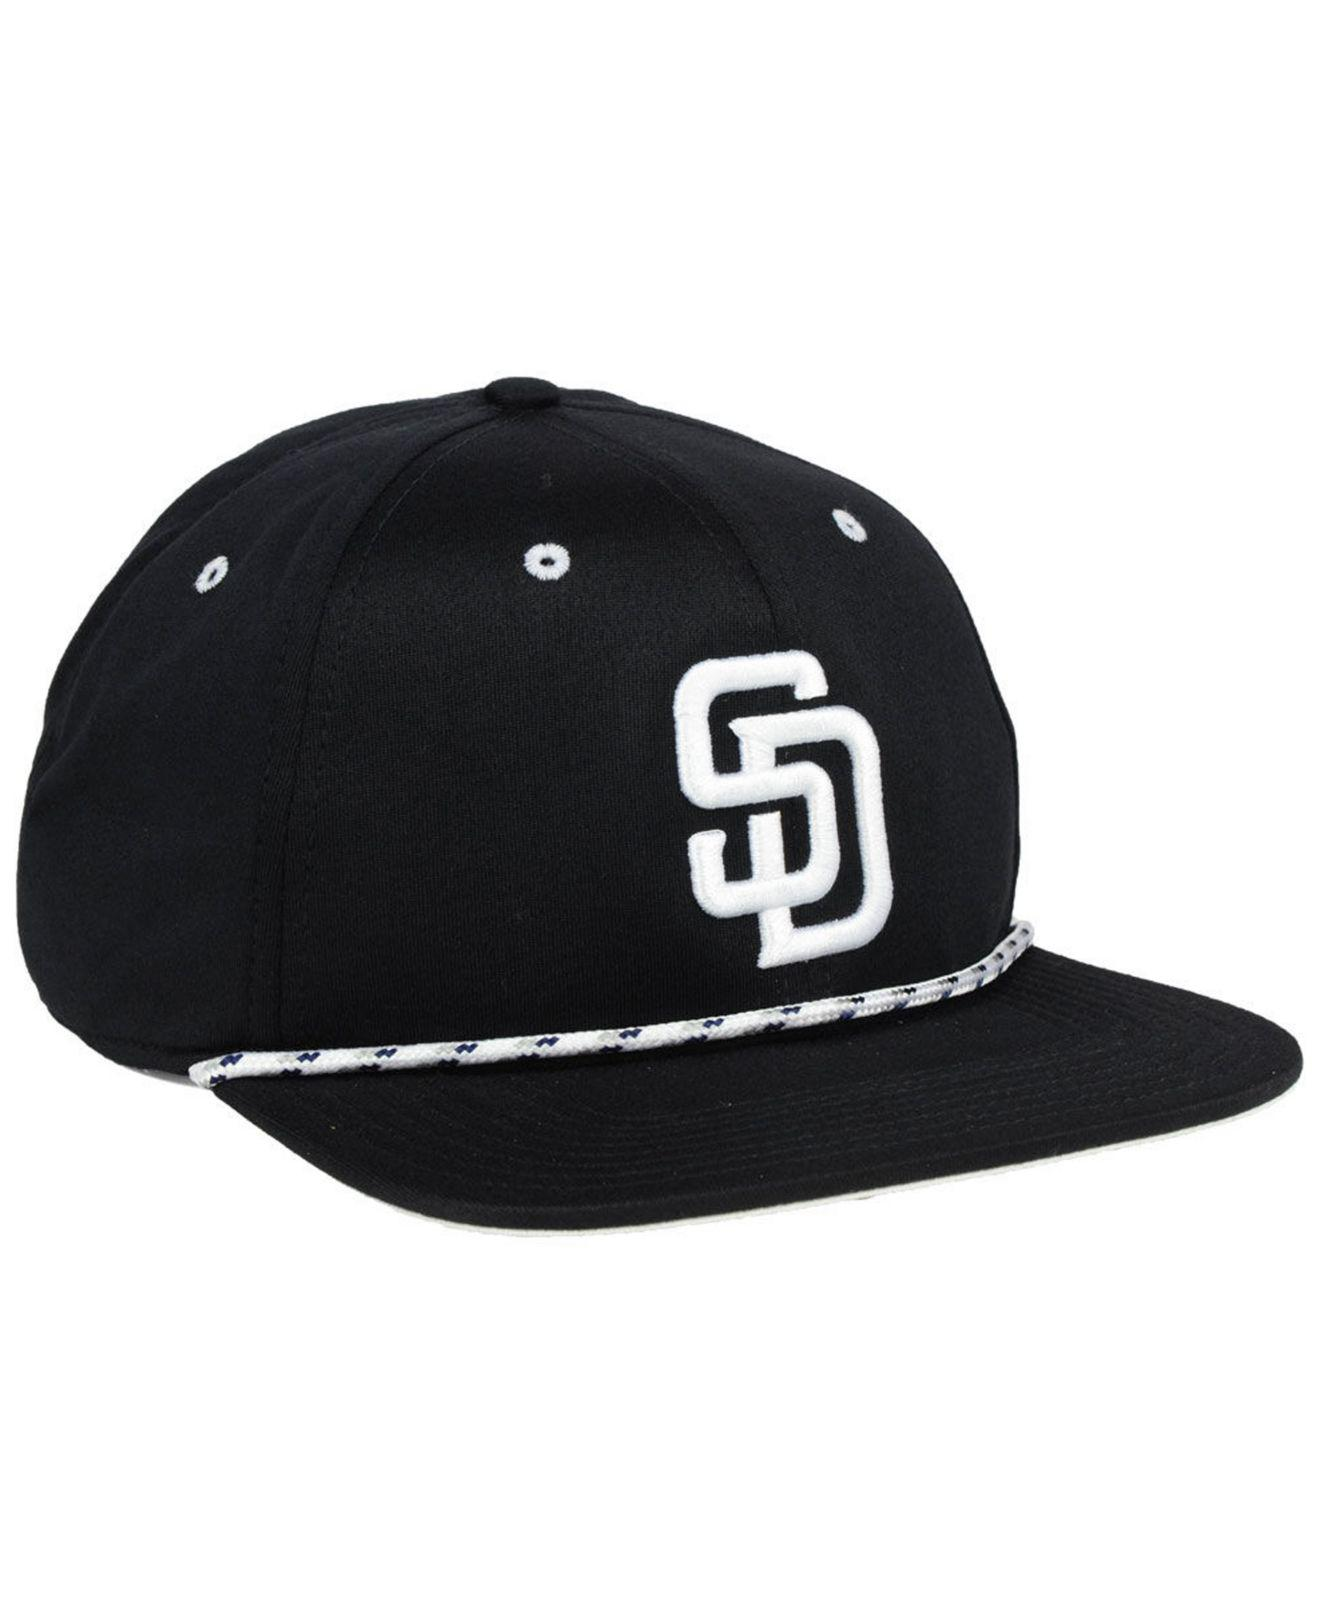 new products 98dc8 3a22b ... shop nike black san diego padres string bill snapback cap for men lyst.  view fullscreen